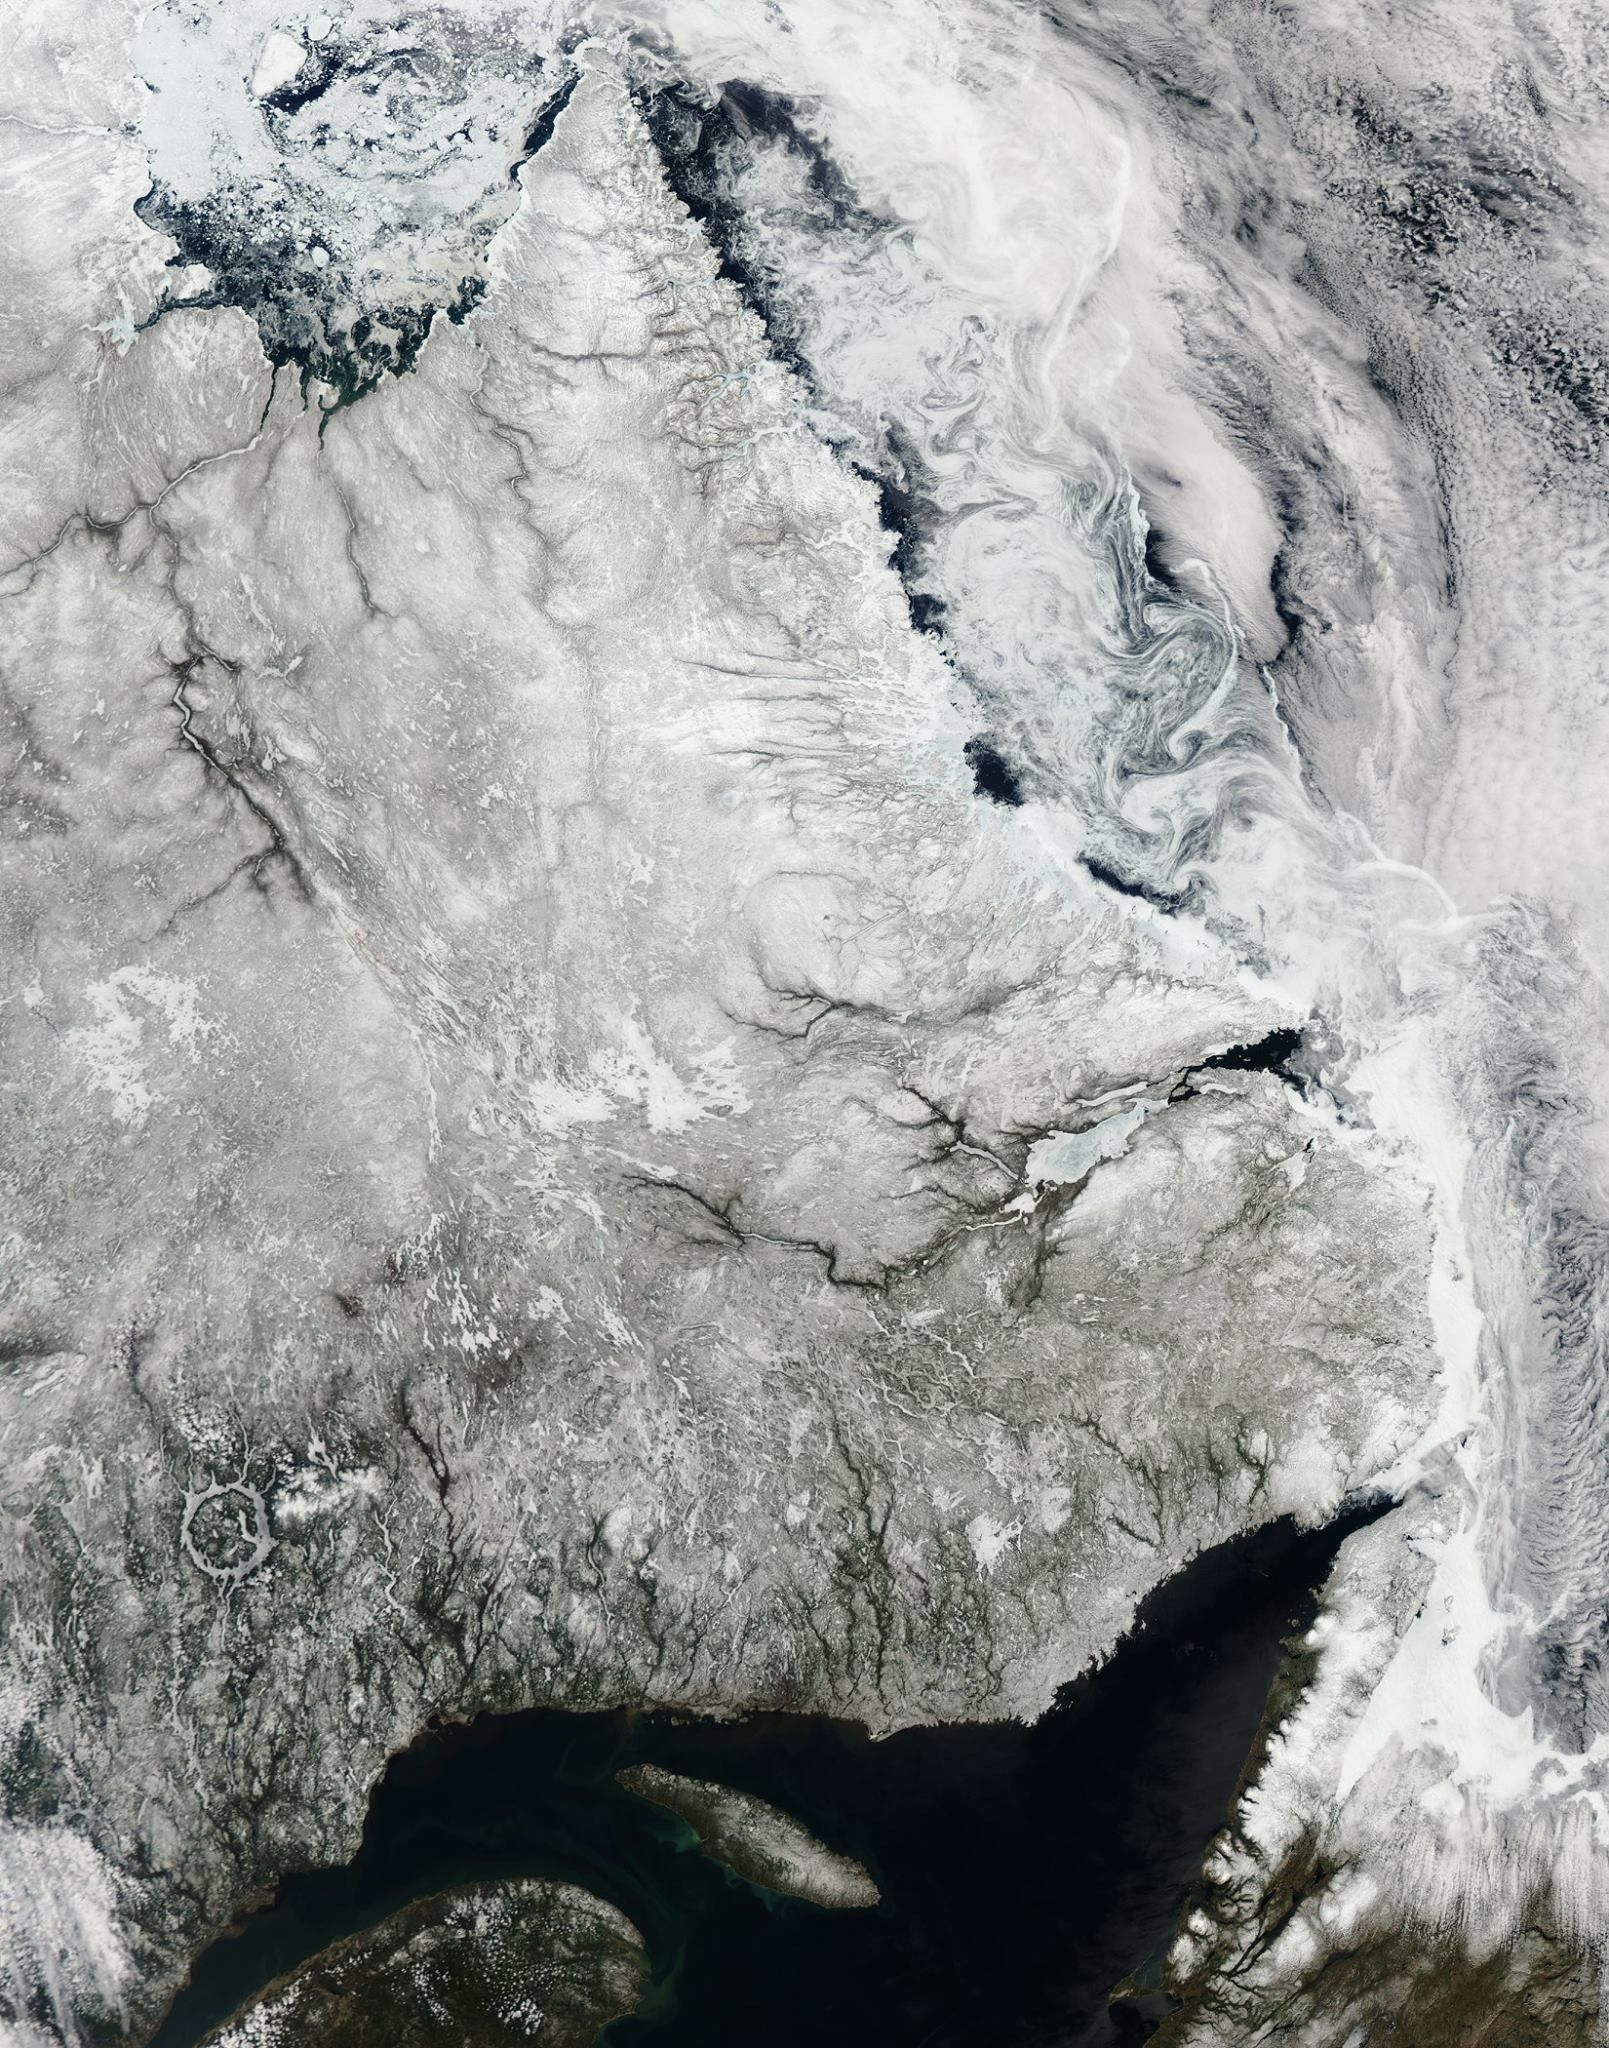 Pin by Joshua Diebel on Space Earth, Sea ice, Satellite